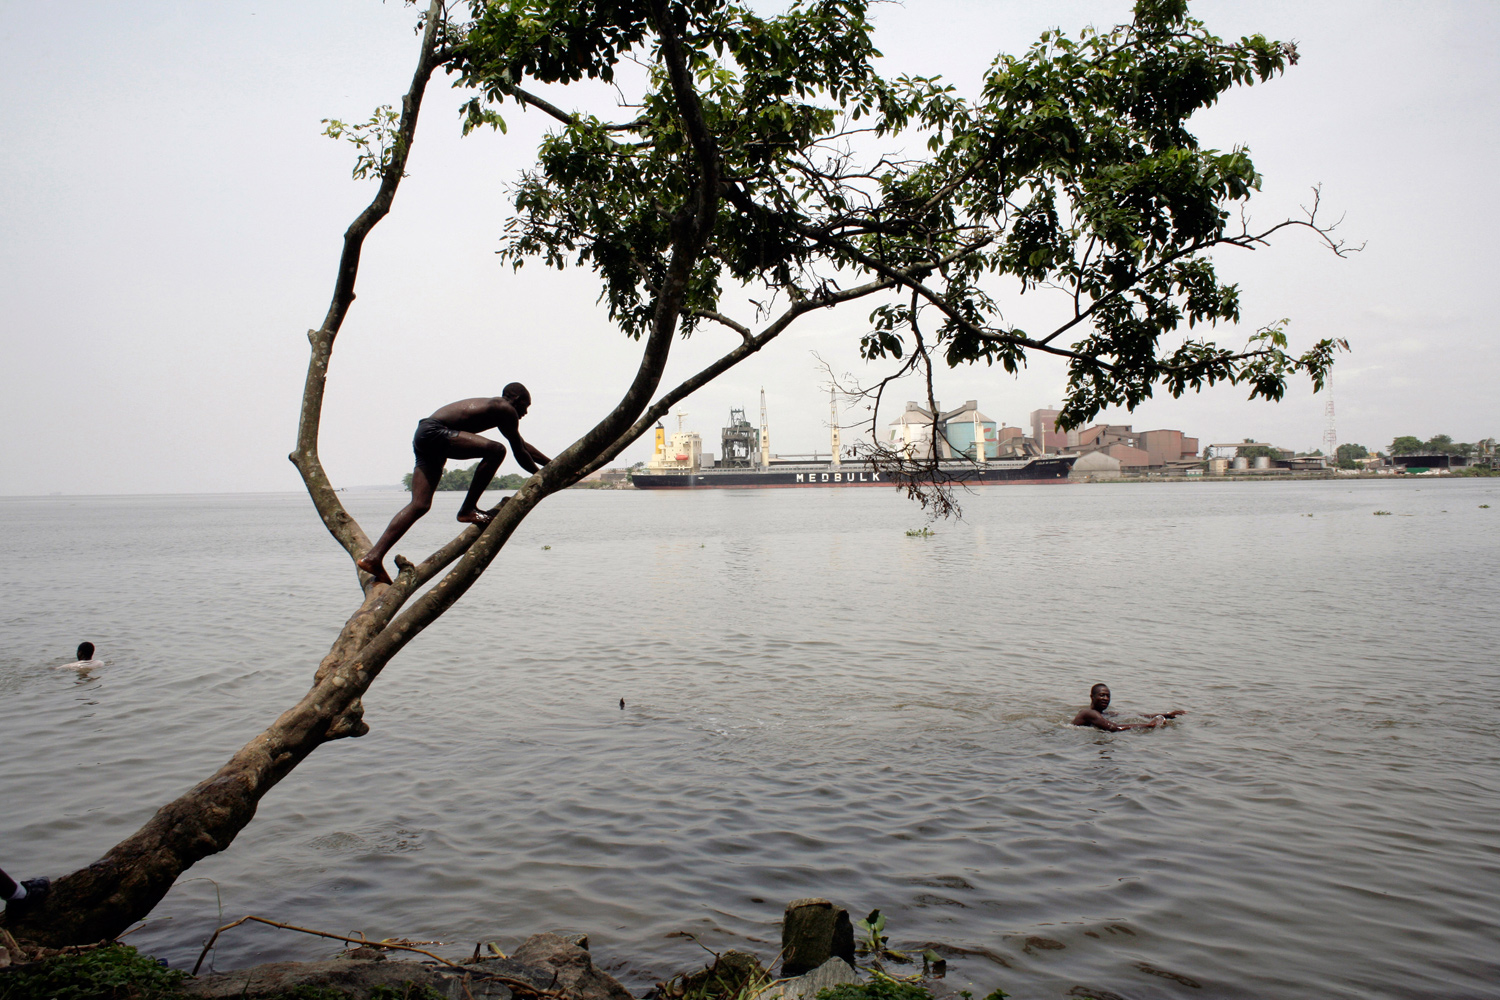 April 10, 2011. On the Wouri River banks in Douala, Cameroon.